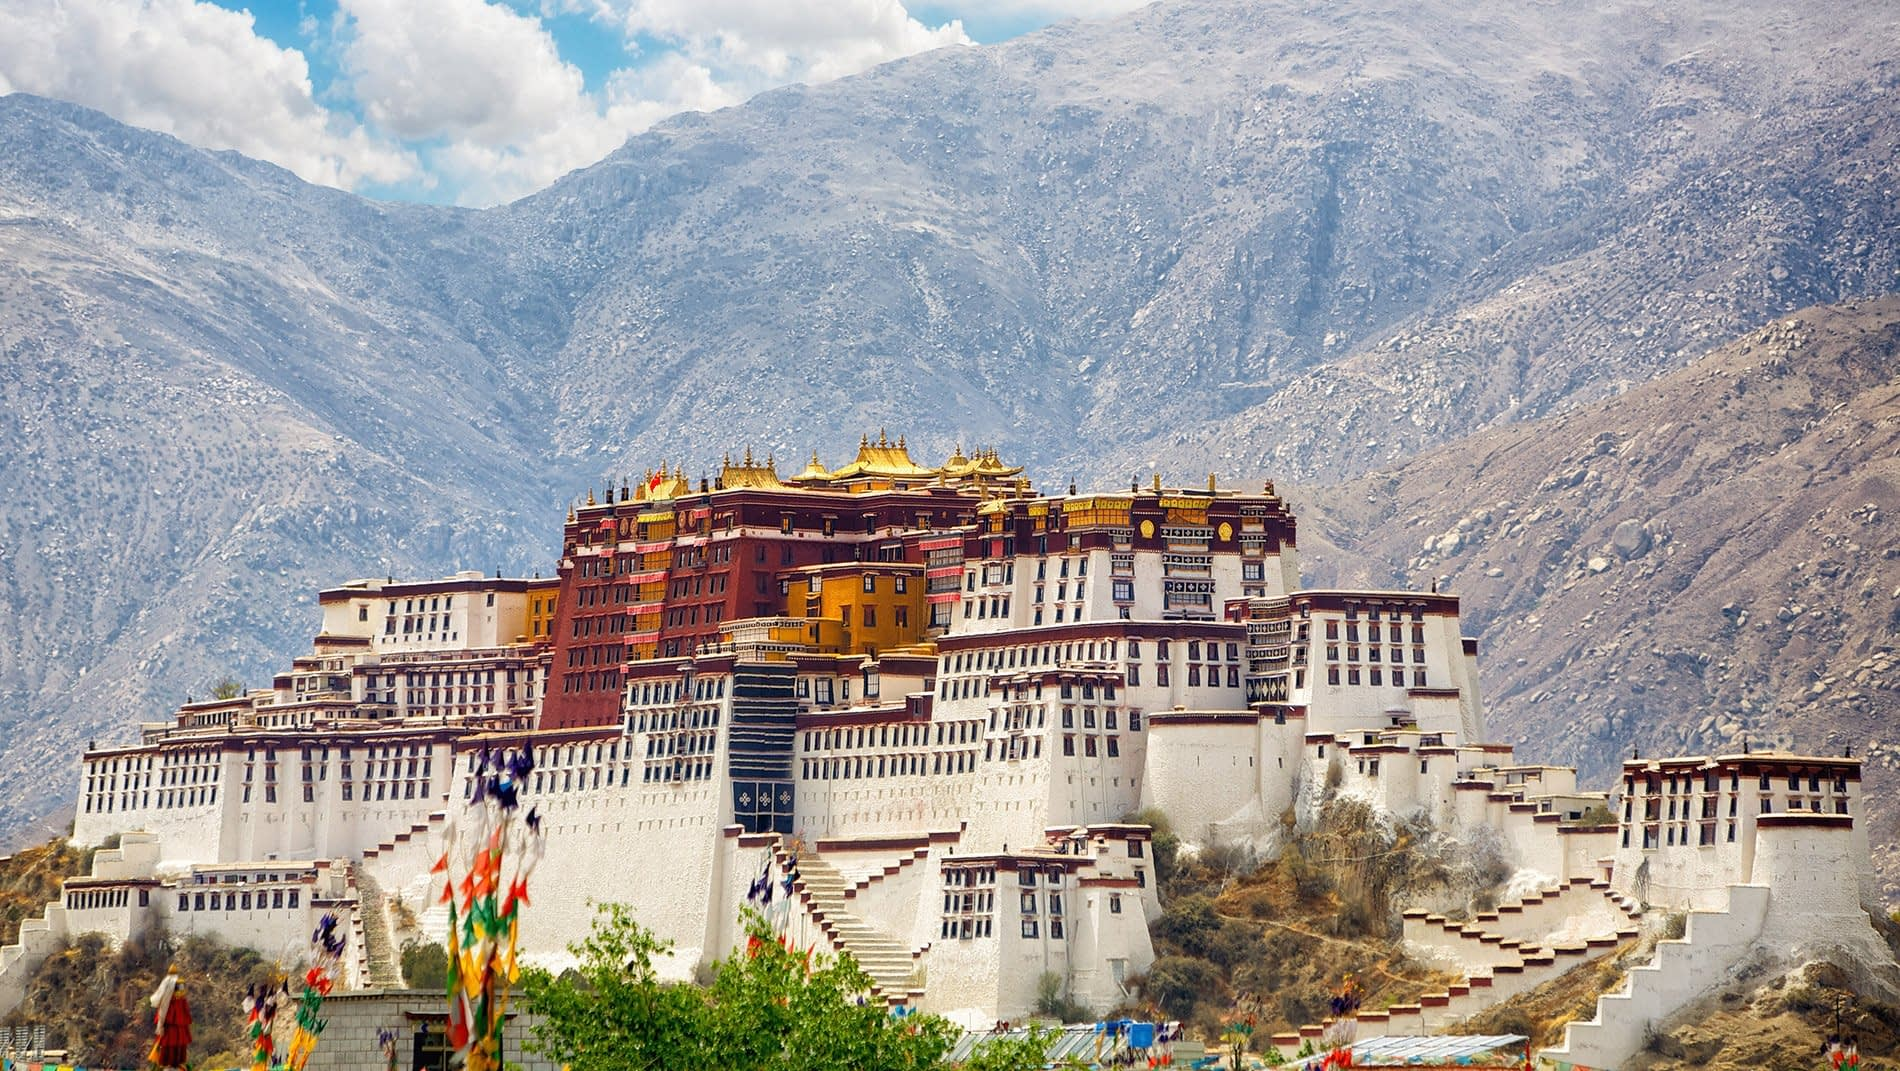 Potala Palace~The iconic Potala Palace is comprised of the red section, devoted to religion, and the white-colored administrative buildings.